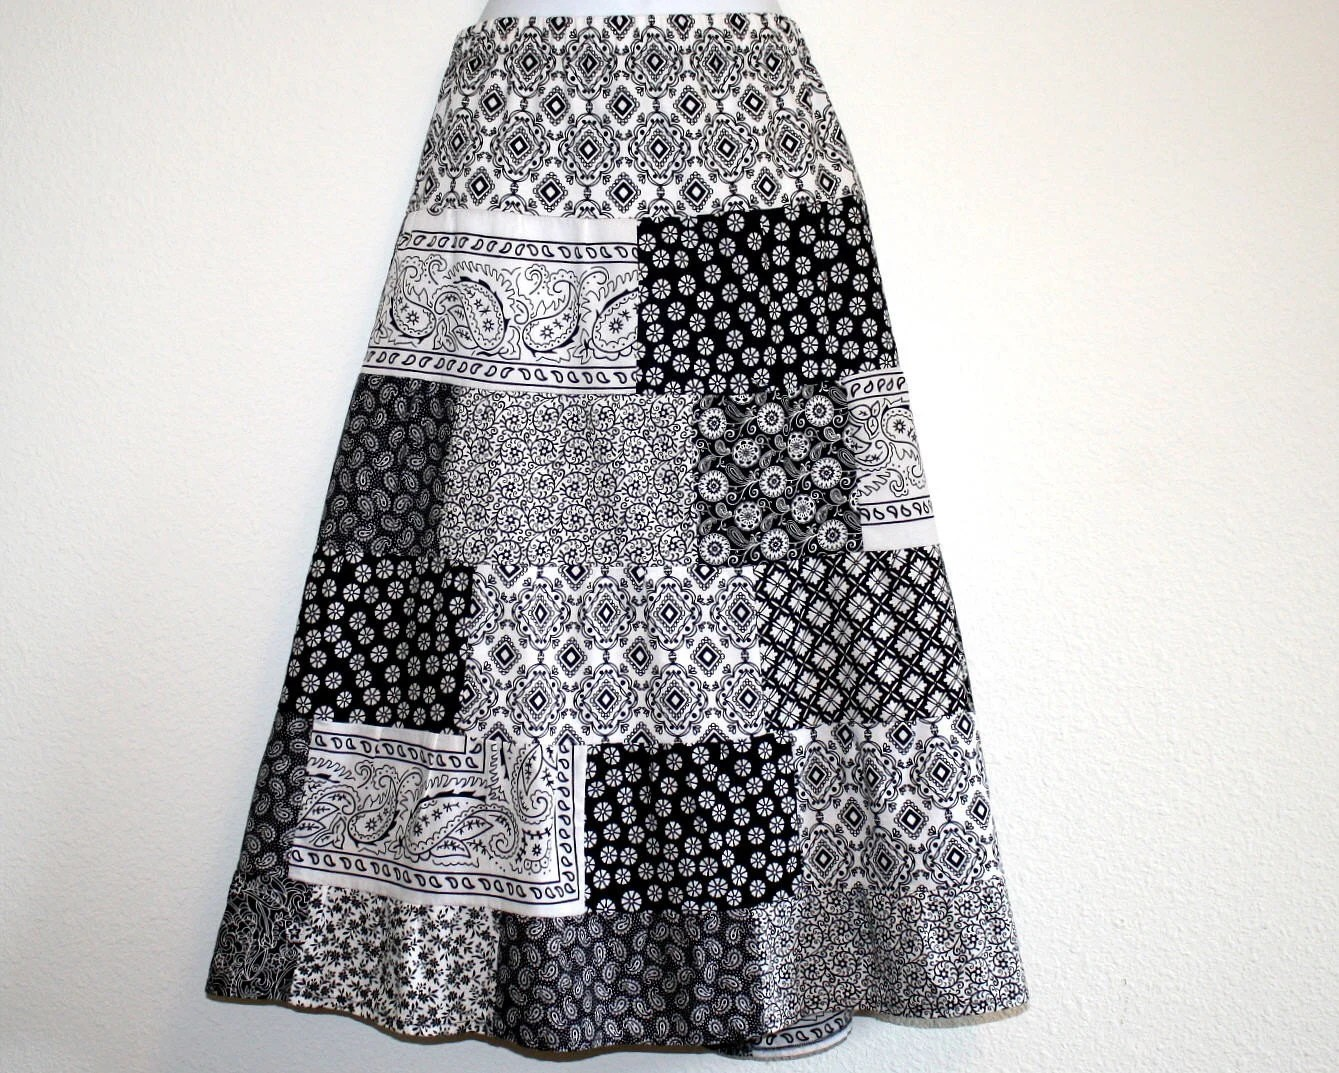 Skirt Tier,Womans Size 10-14 Elastic Waist, Black and White, Cotton